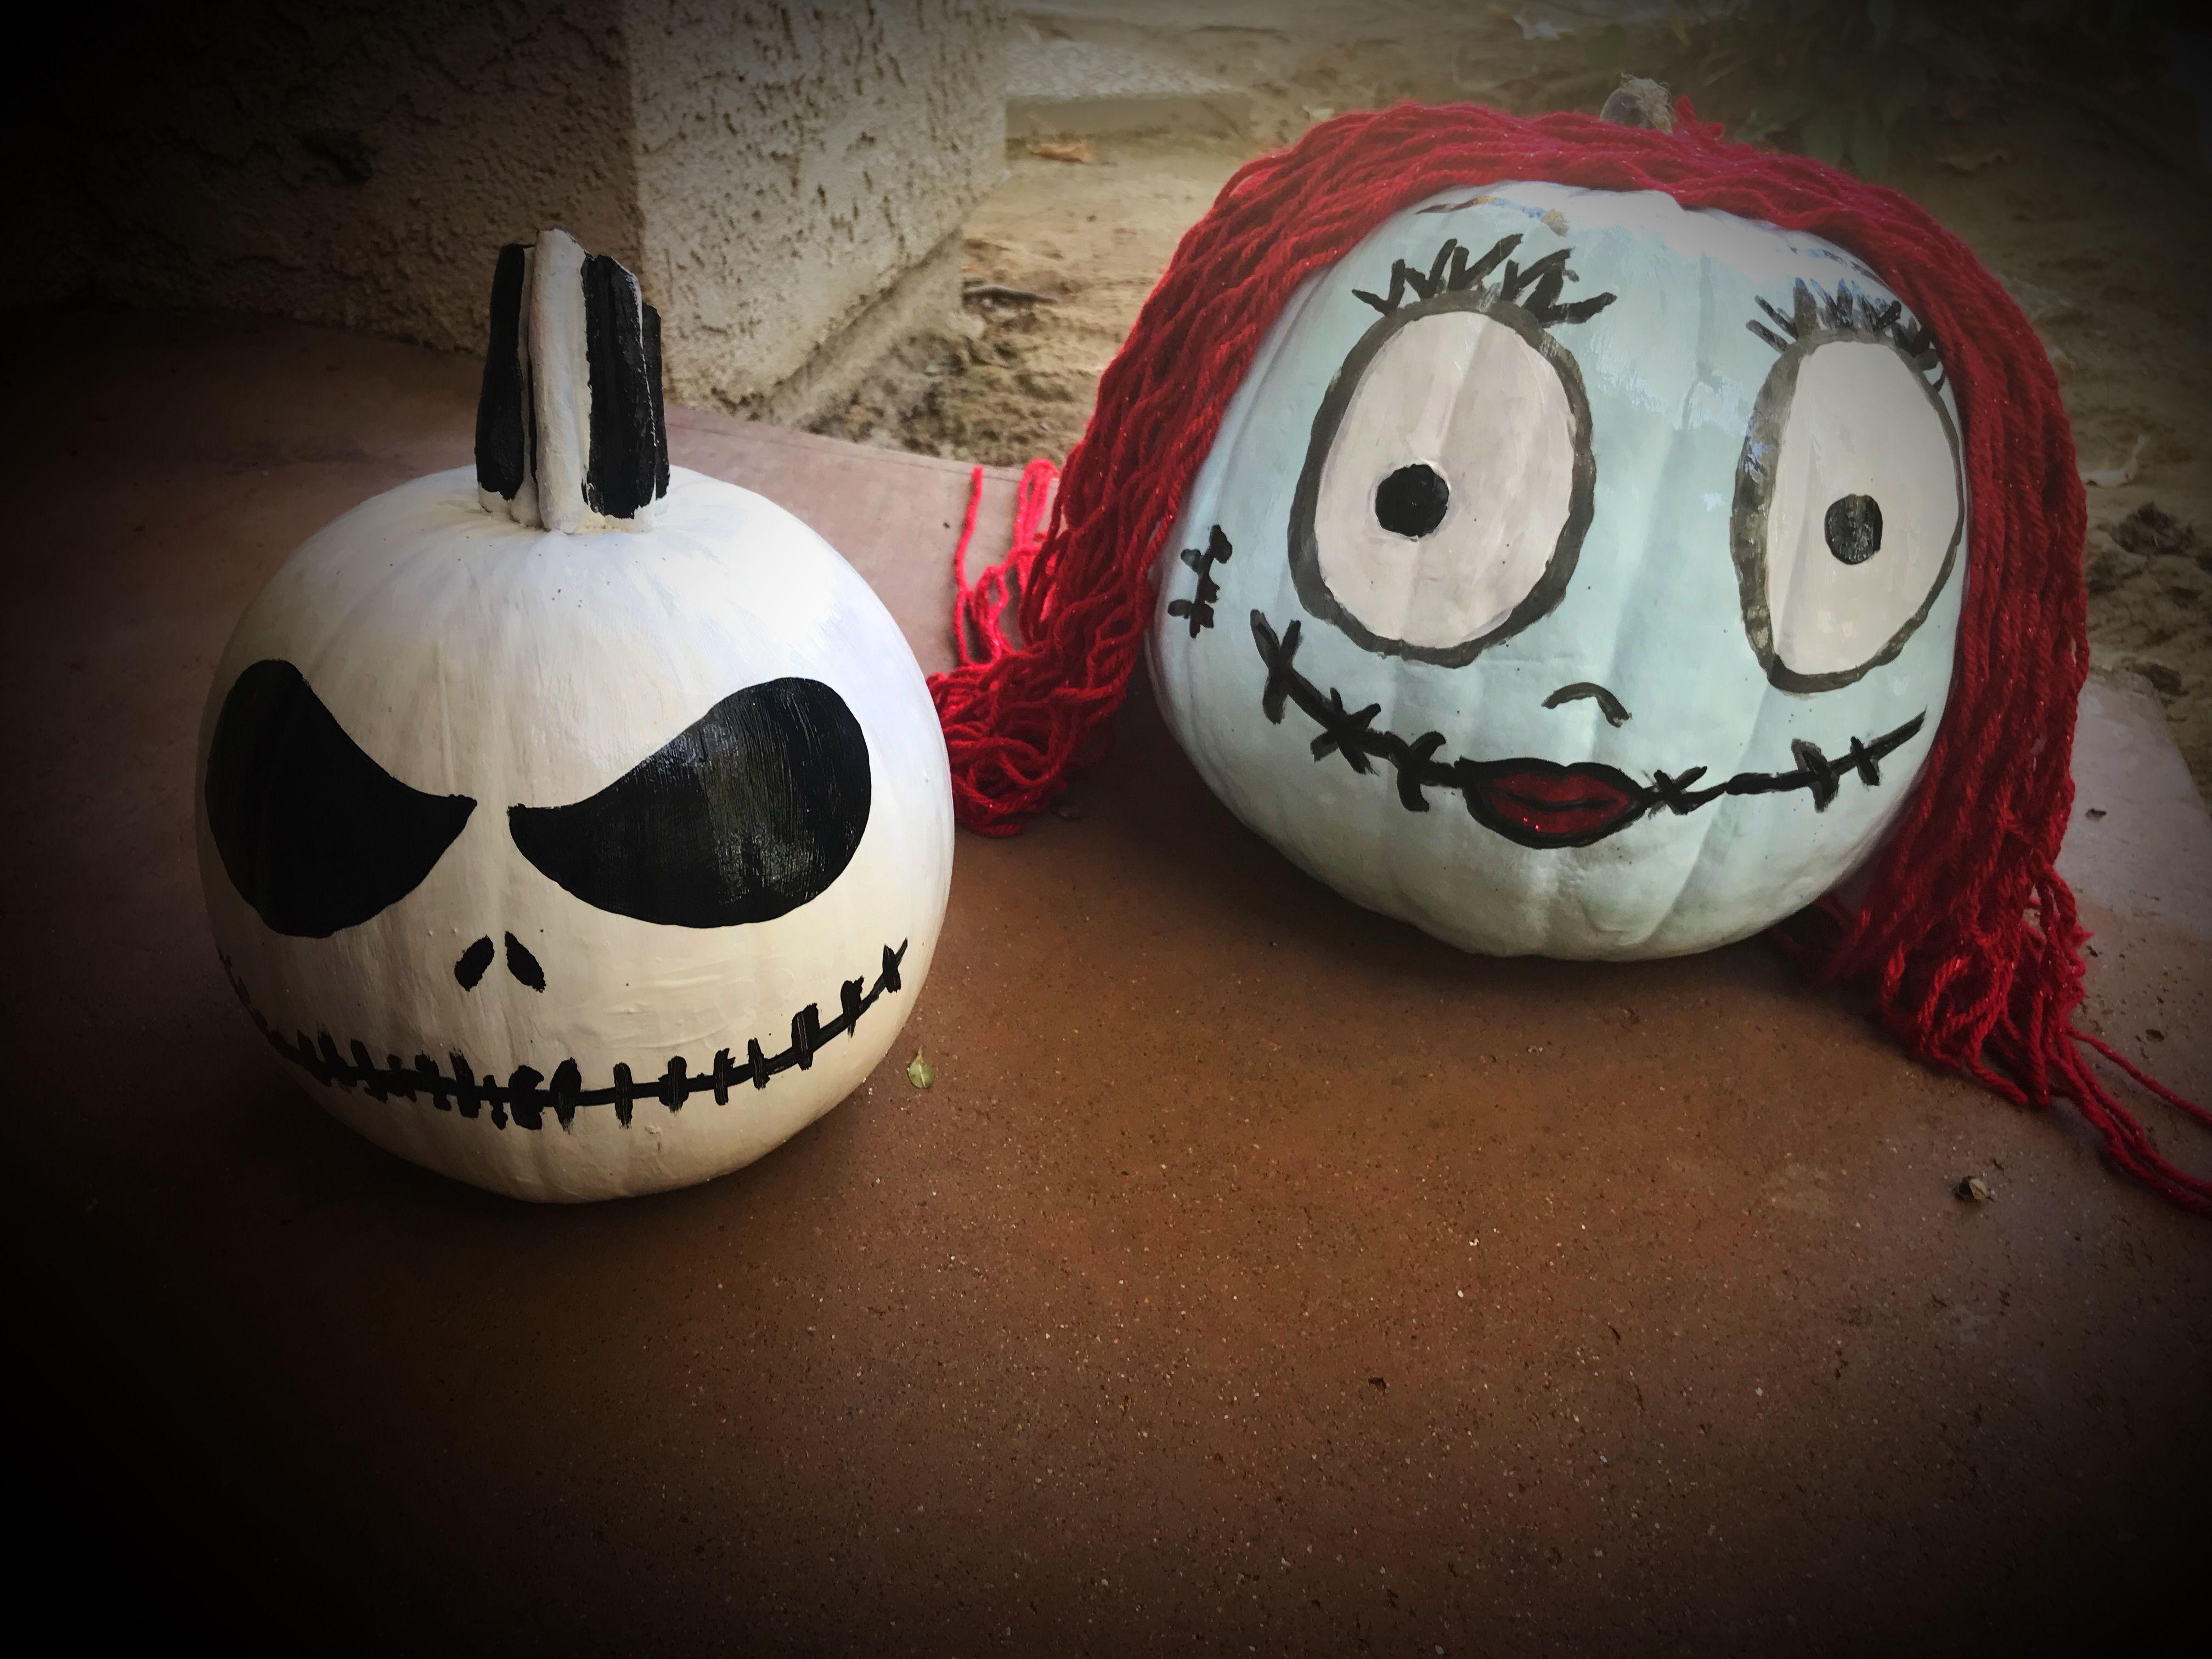 Jack Skellington and Sally from the Nightmare Before